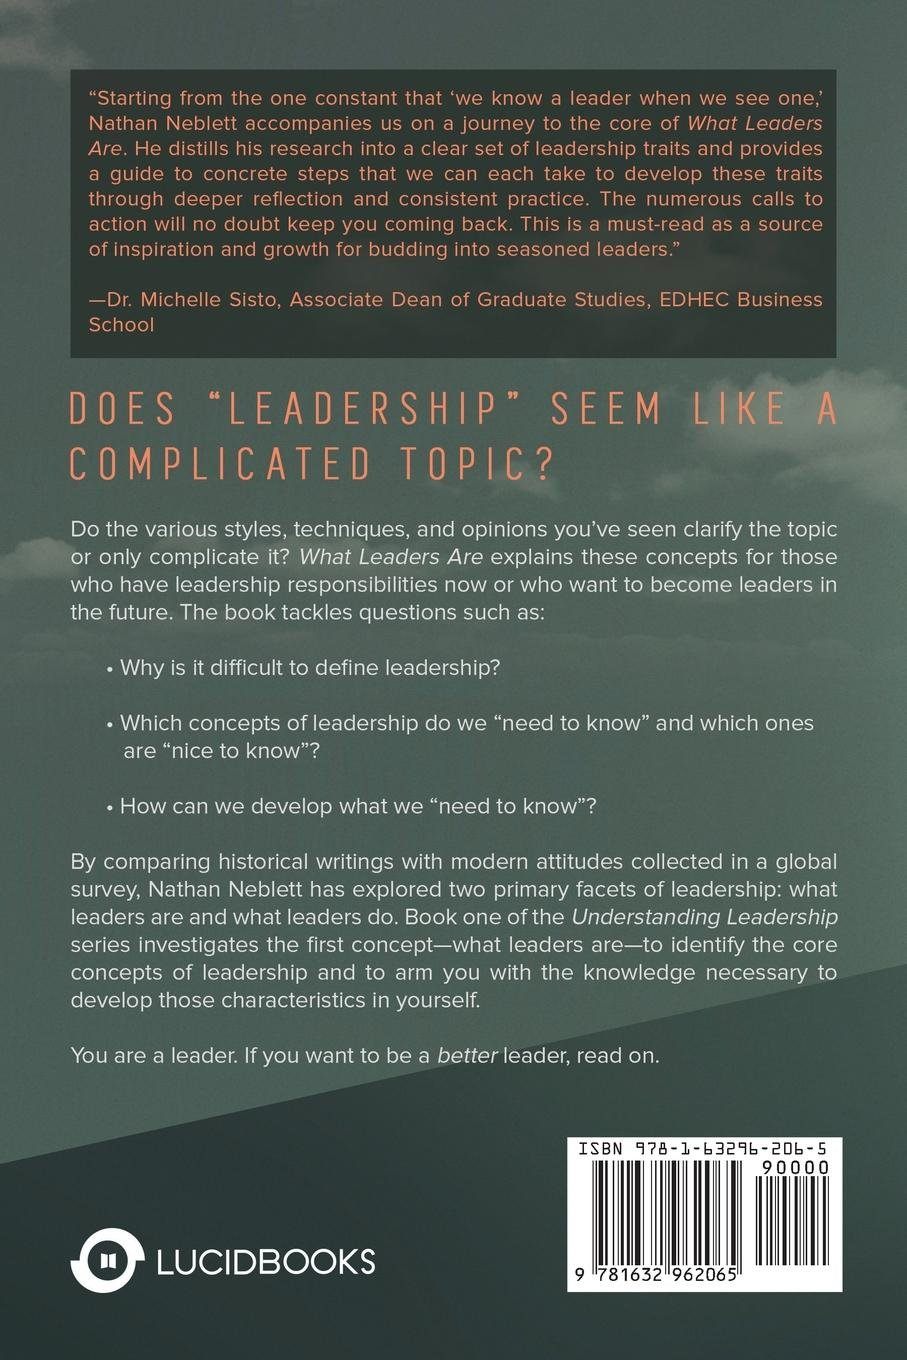 What Leaders Are: Book 1 of the Understanding Leadership